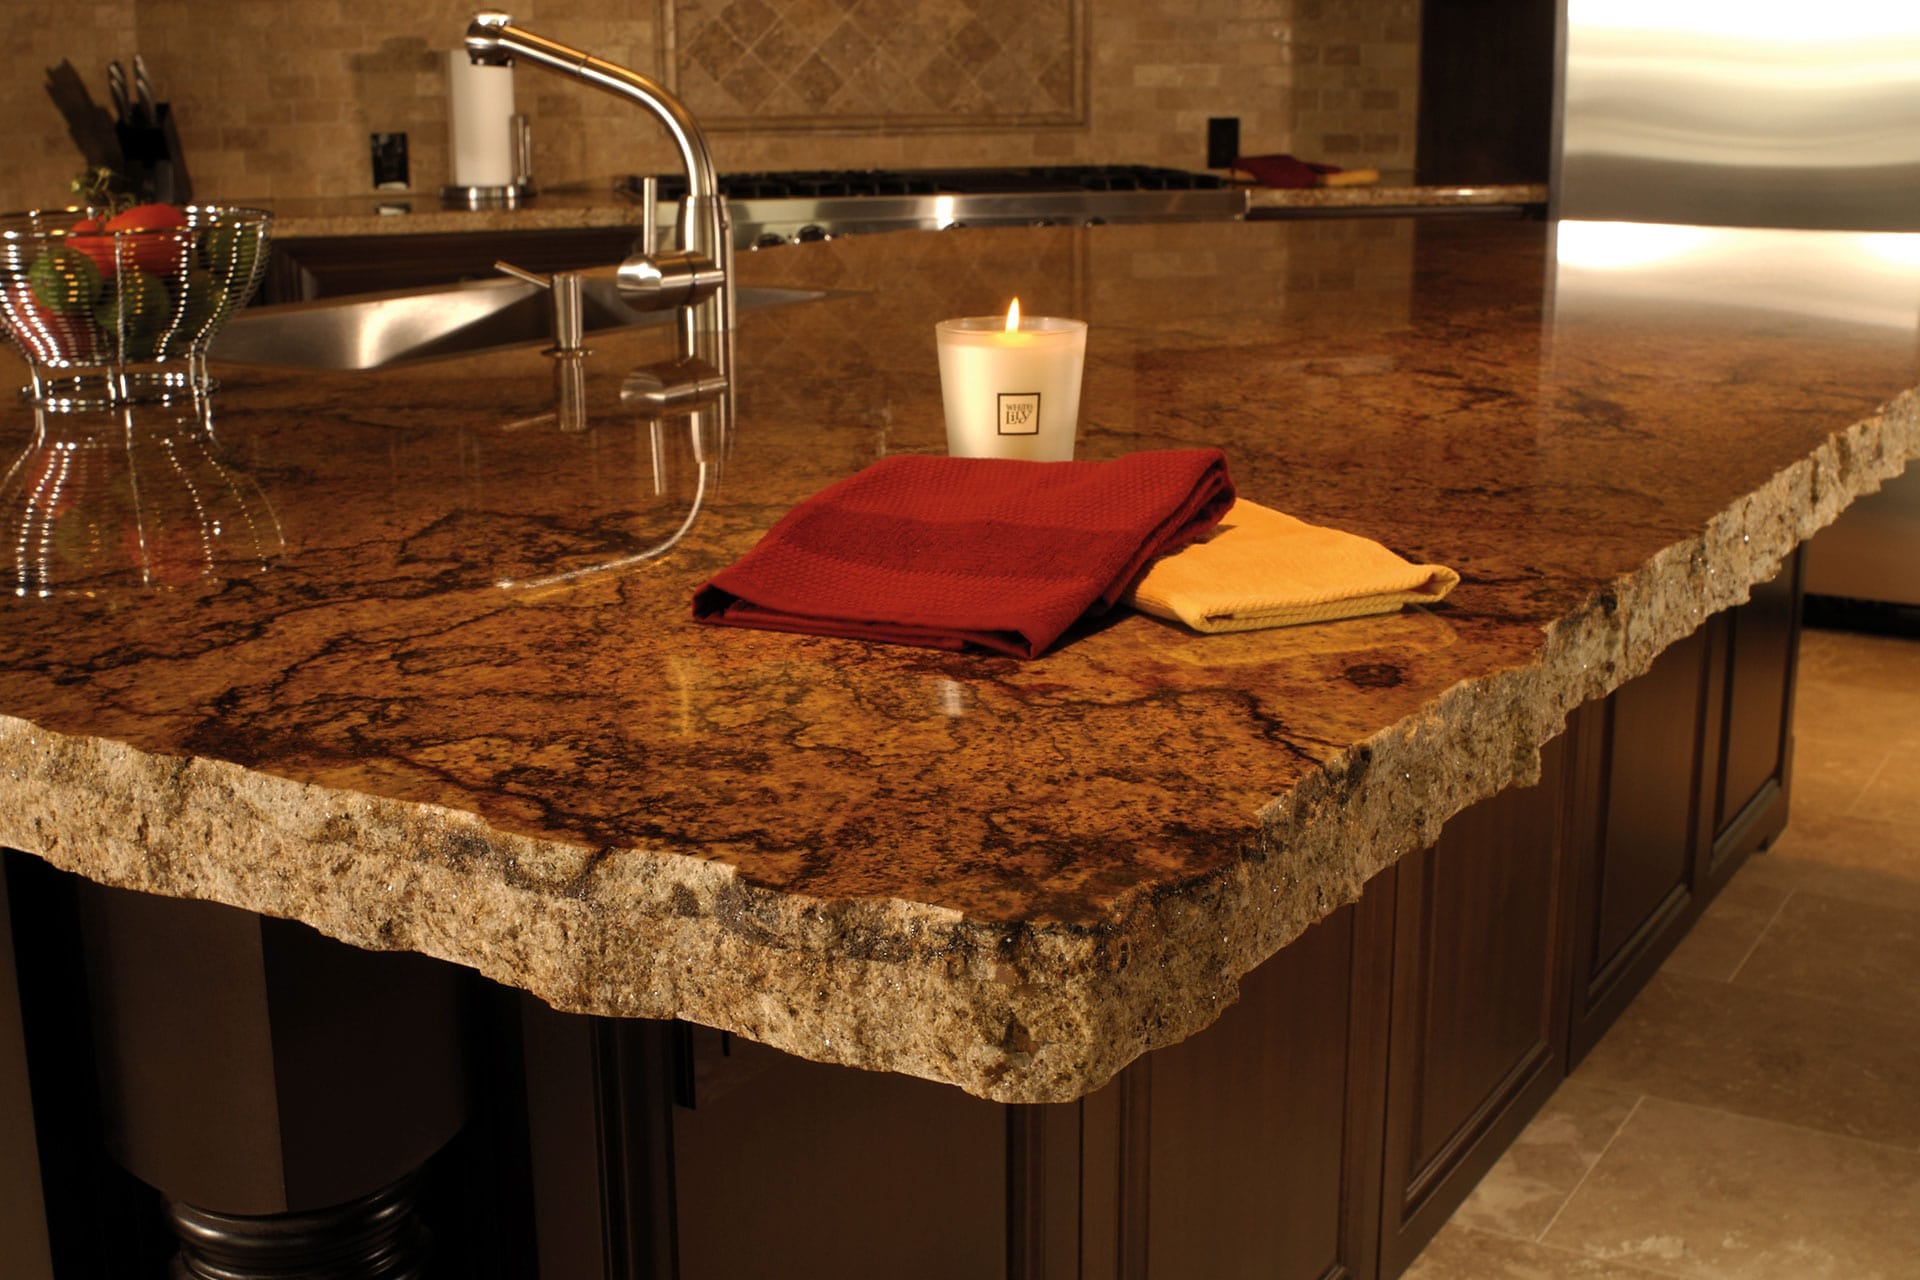 Kitchen Countertop Types, Design Options, and Usage Parameters. Ragged edges of the classic styled glossy granite countertop